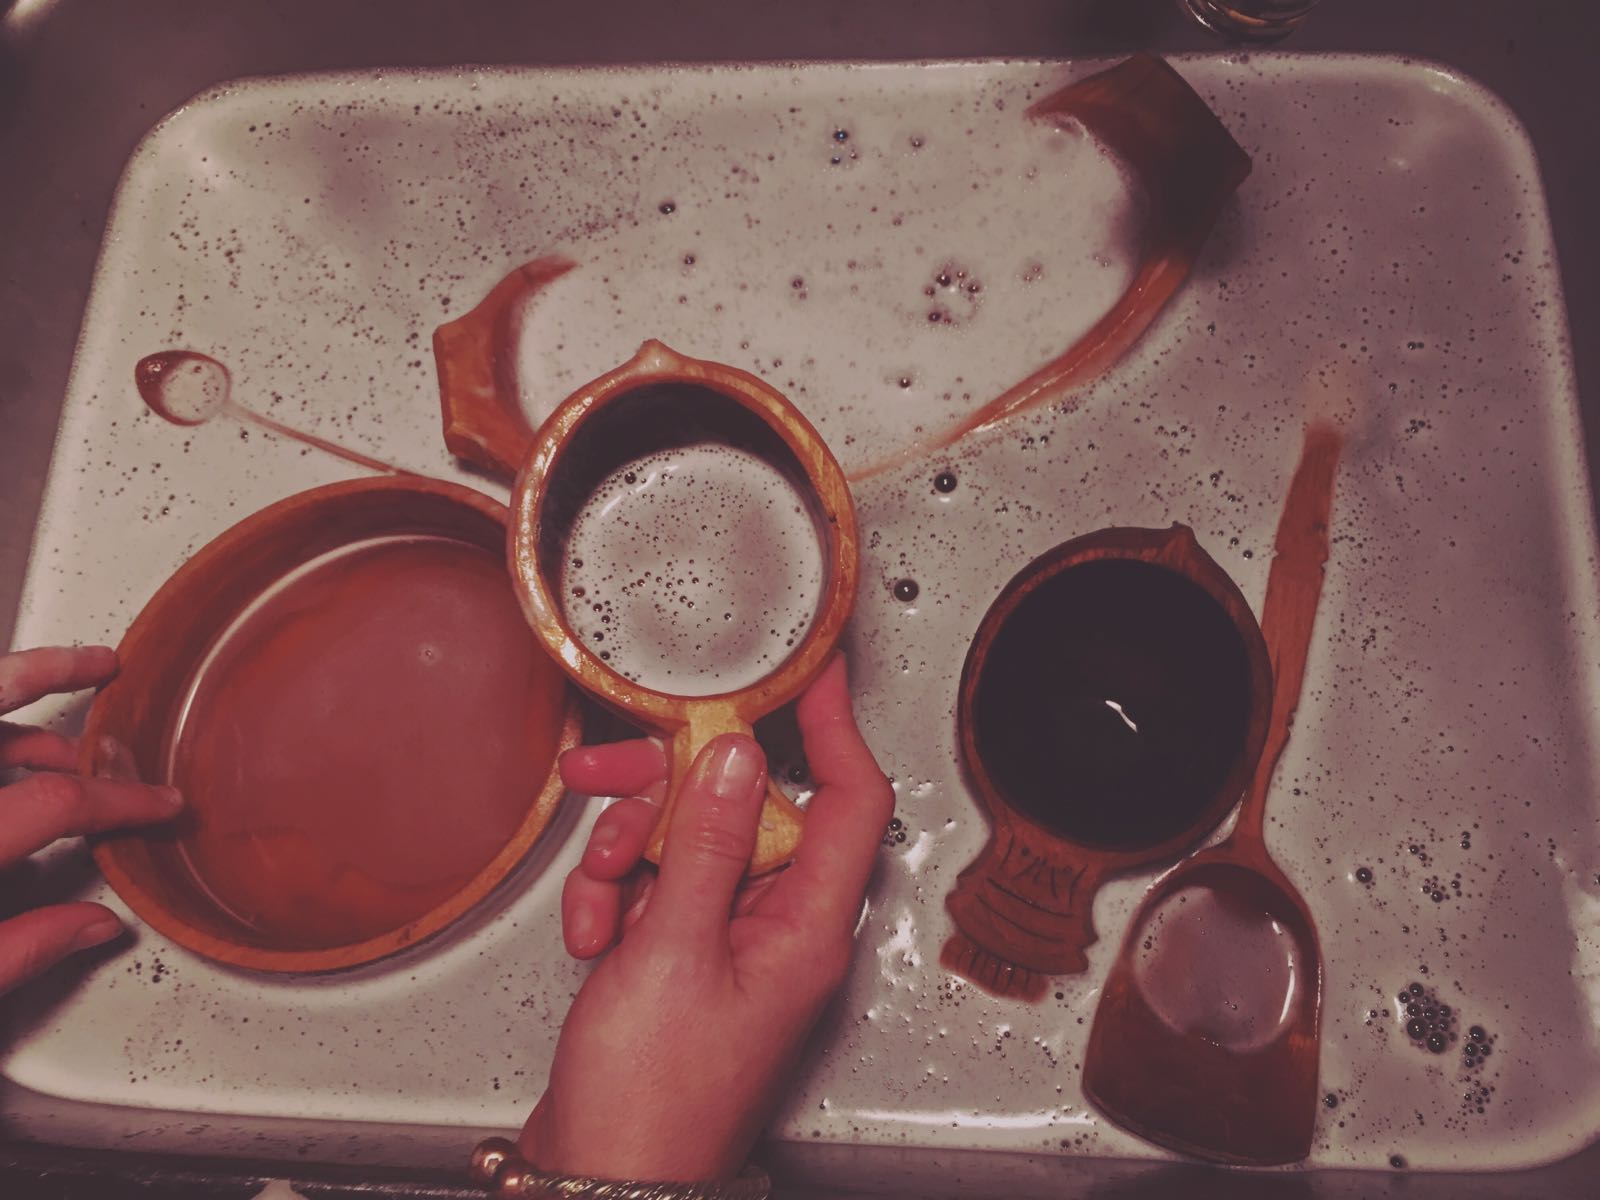 Warm soapy water for cleaning handmade wooden items